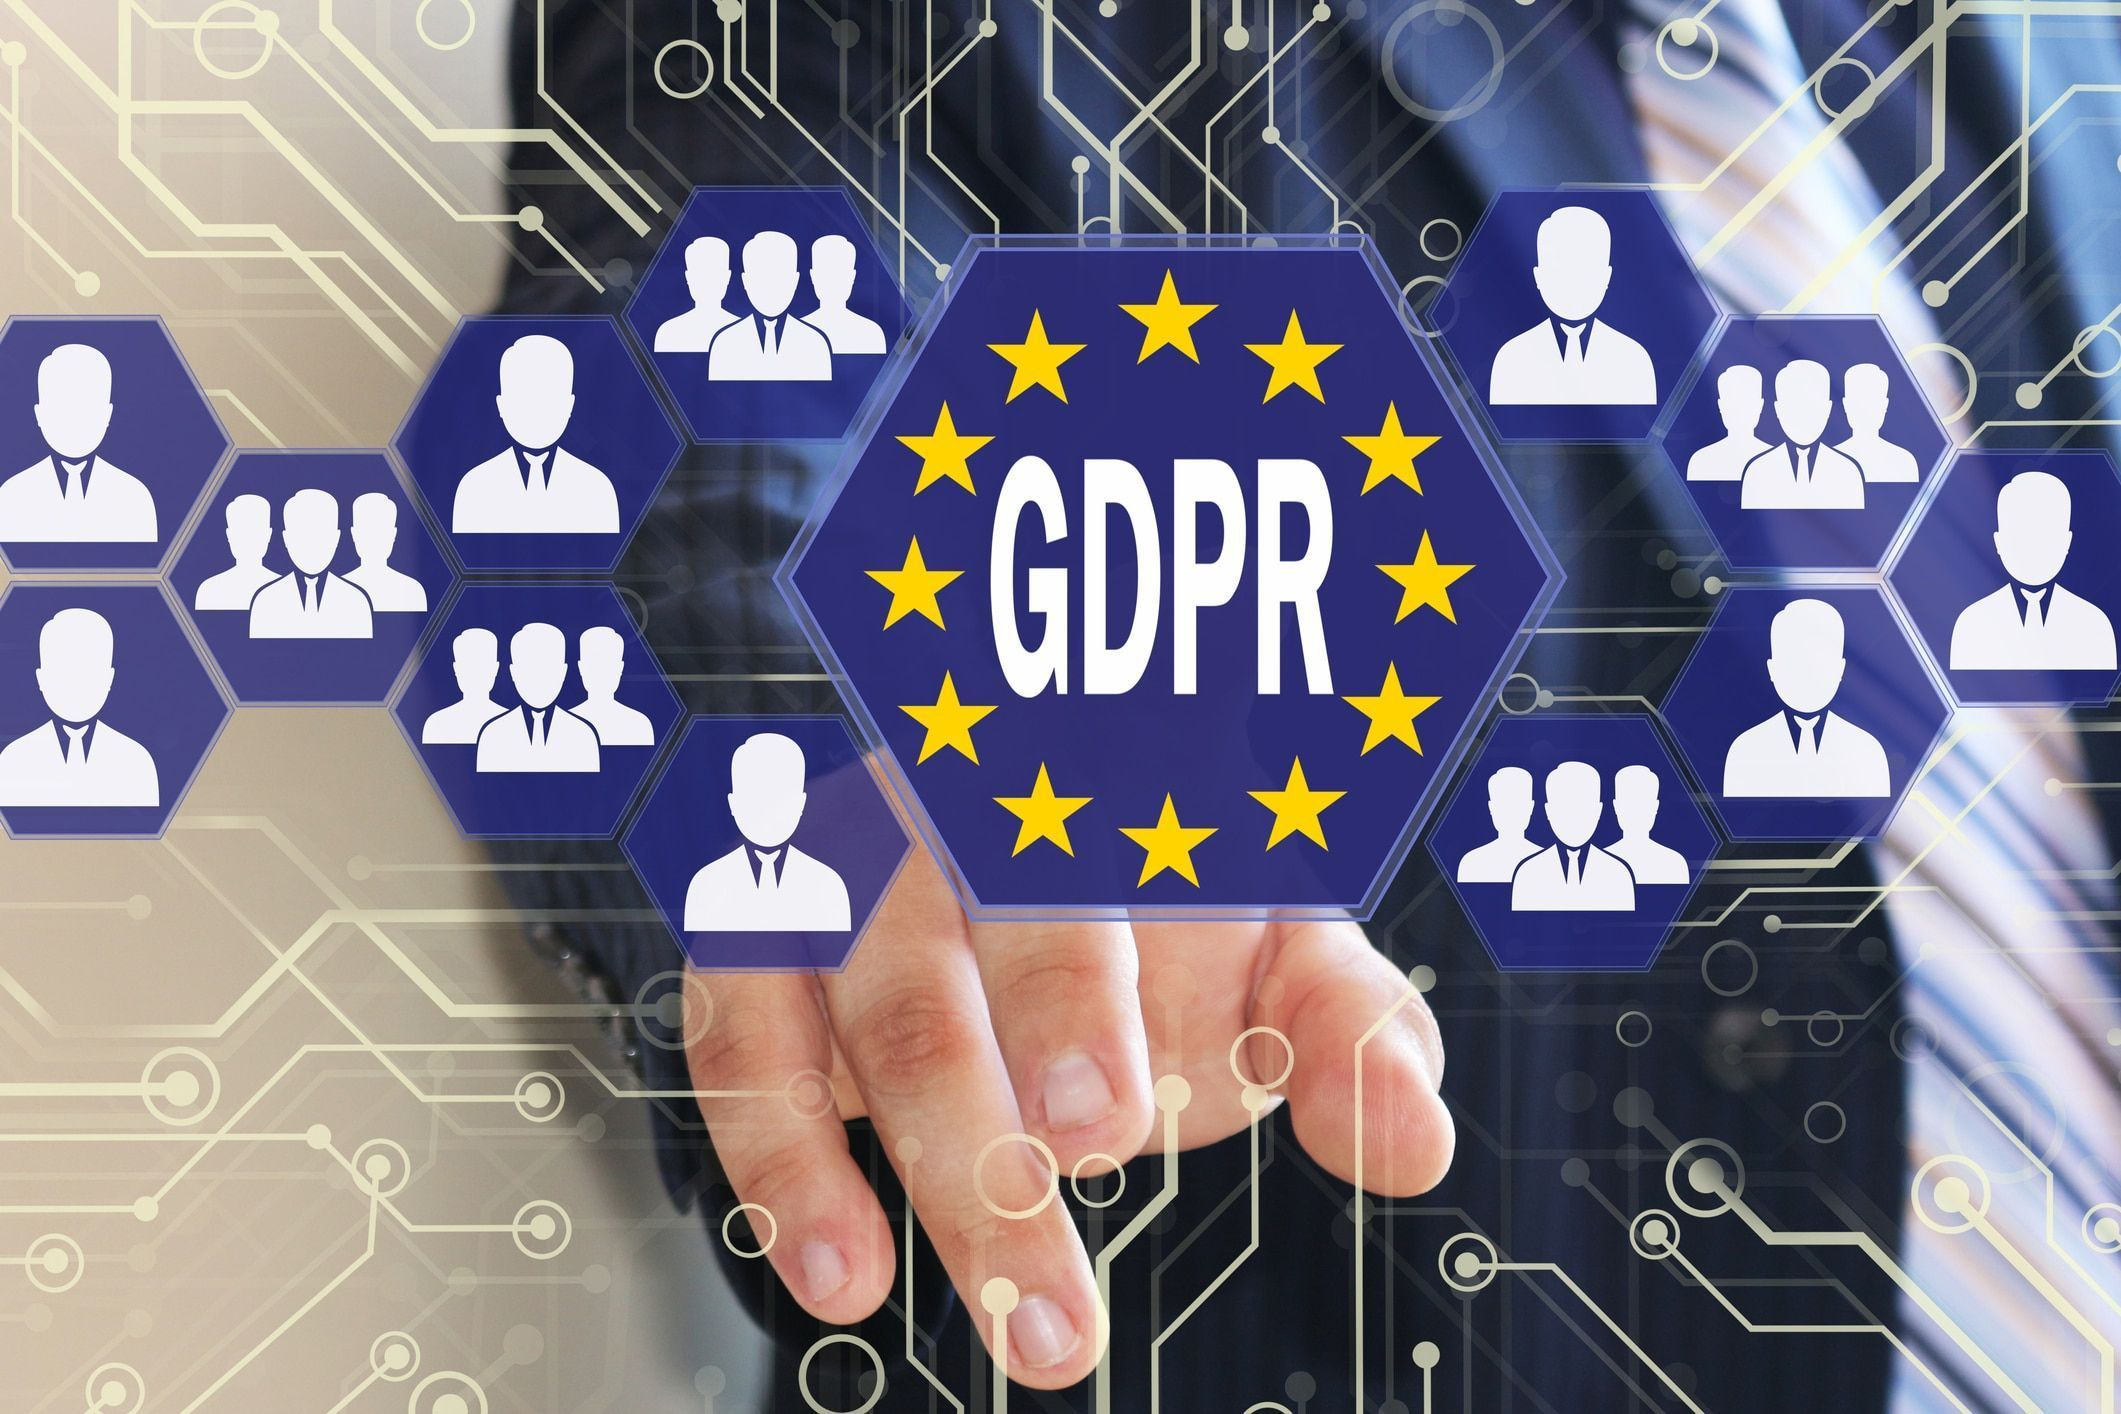 /how-does-the-gdpr-affect-b2b-data-a-simple-explanation-ah52312w feature image